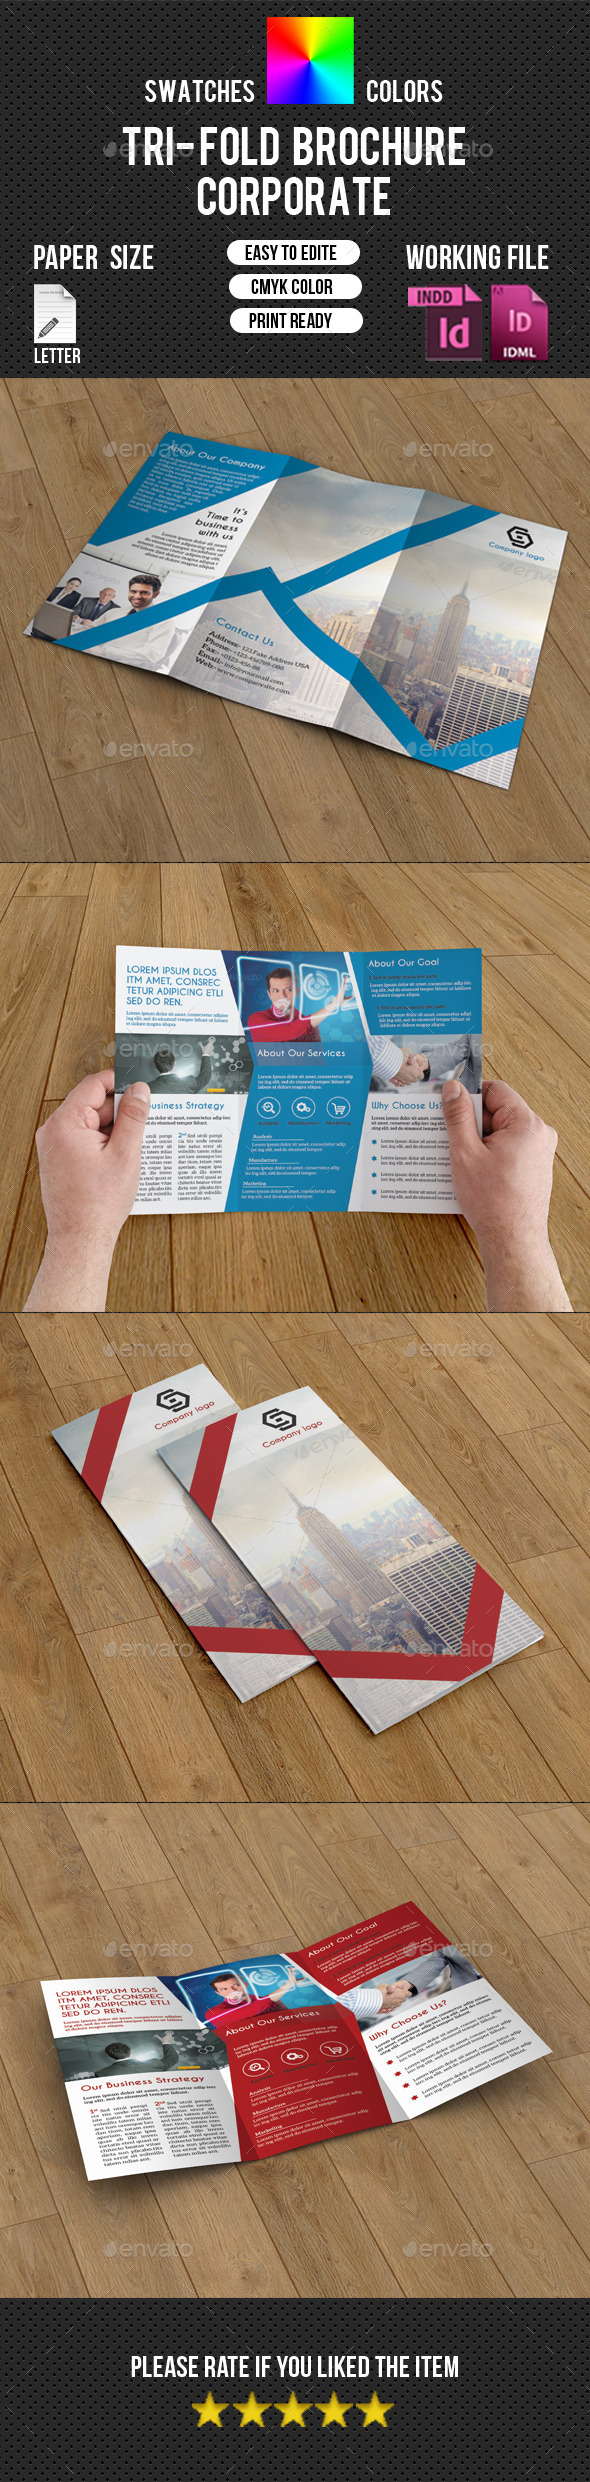 Corporate Trifold Brochure-V224 - Corporate Brochures